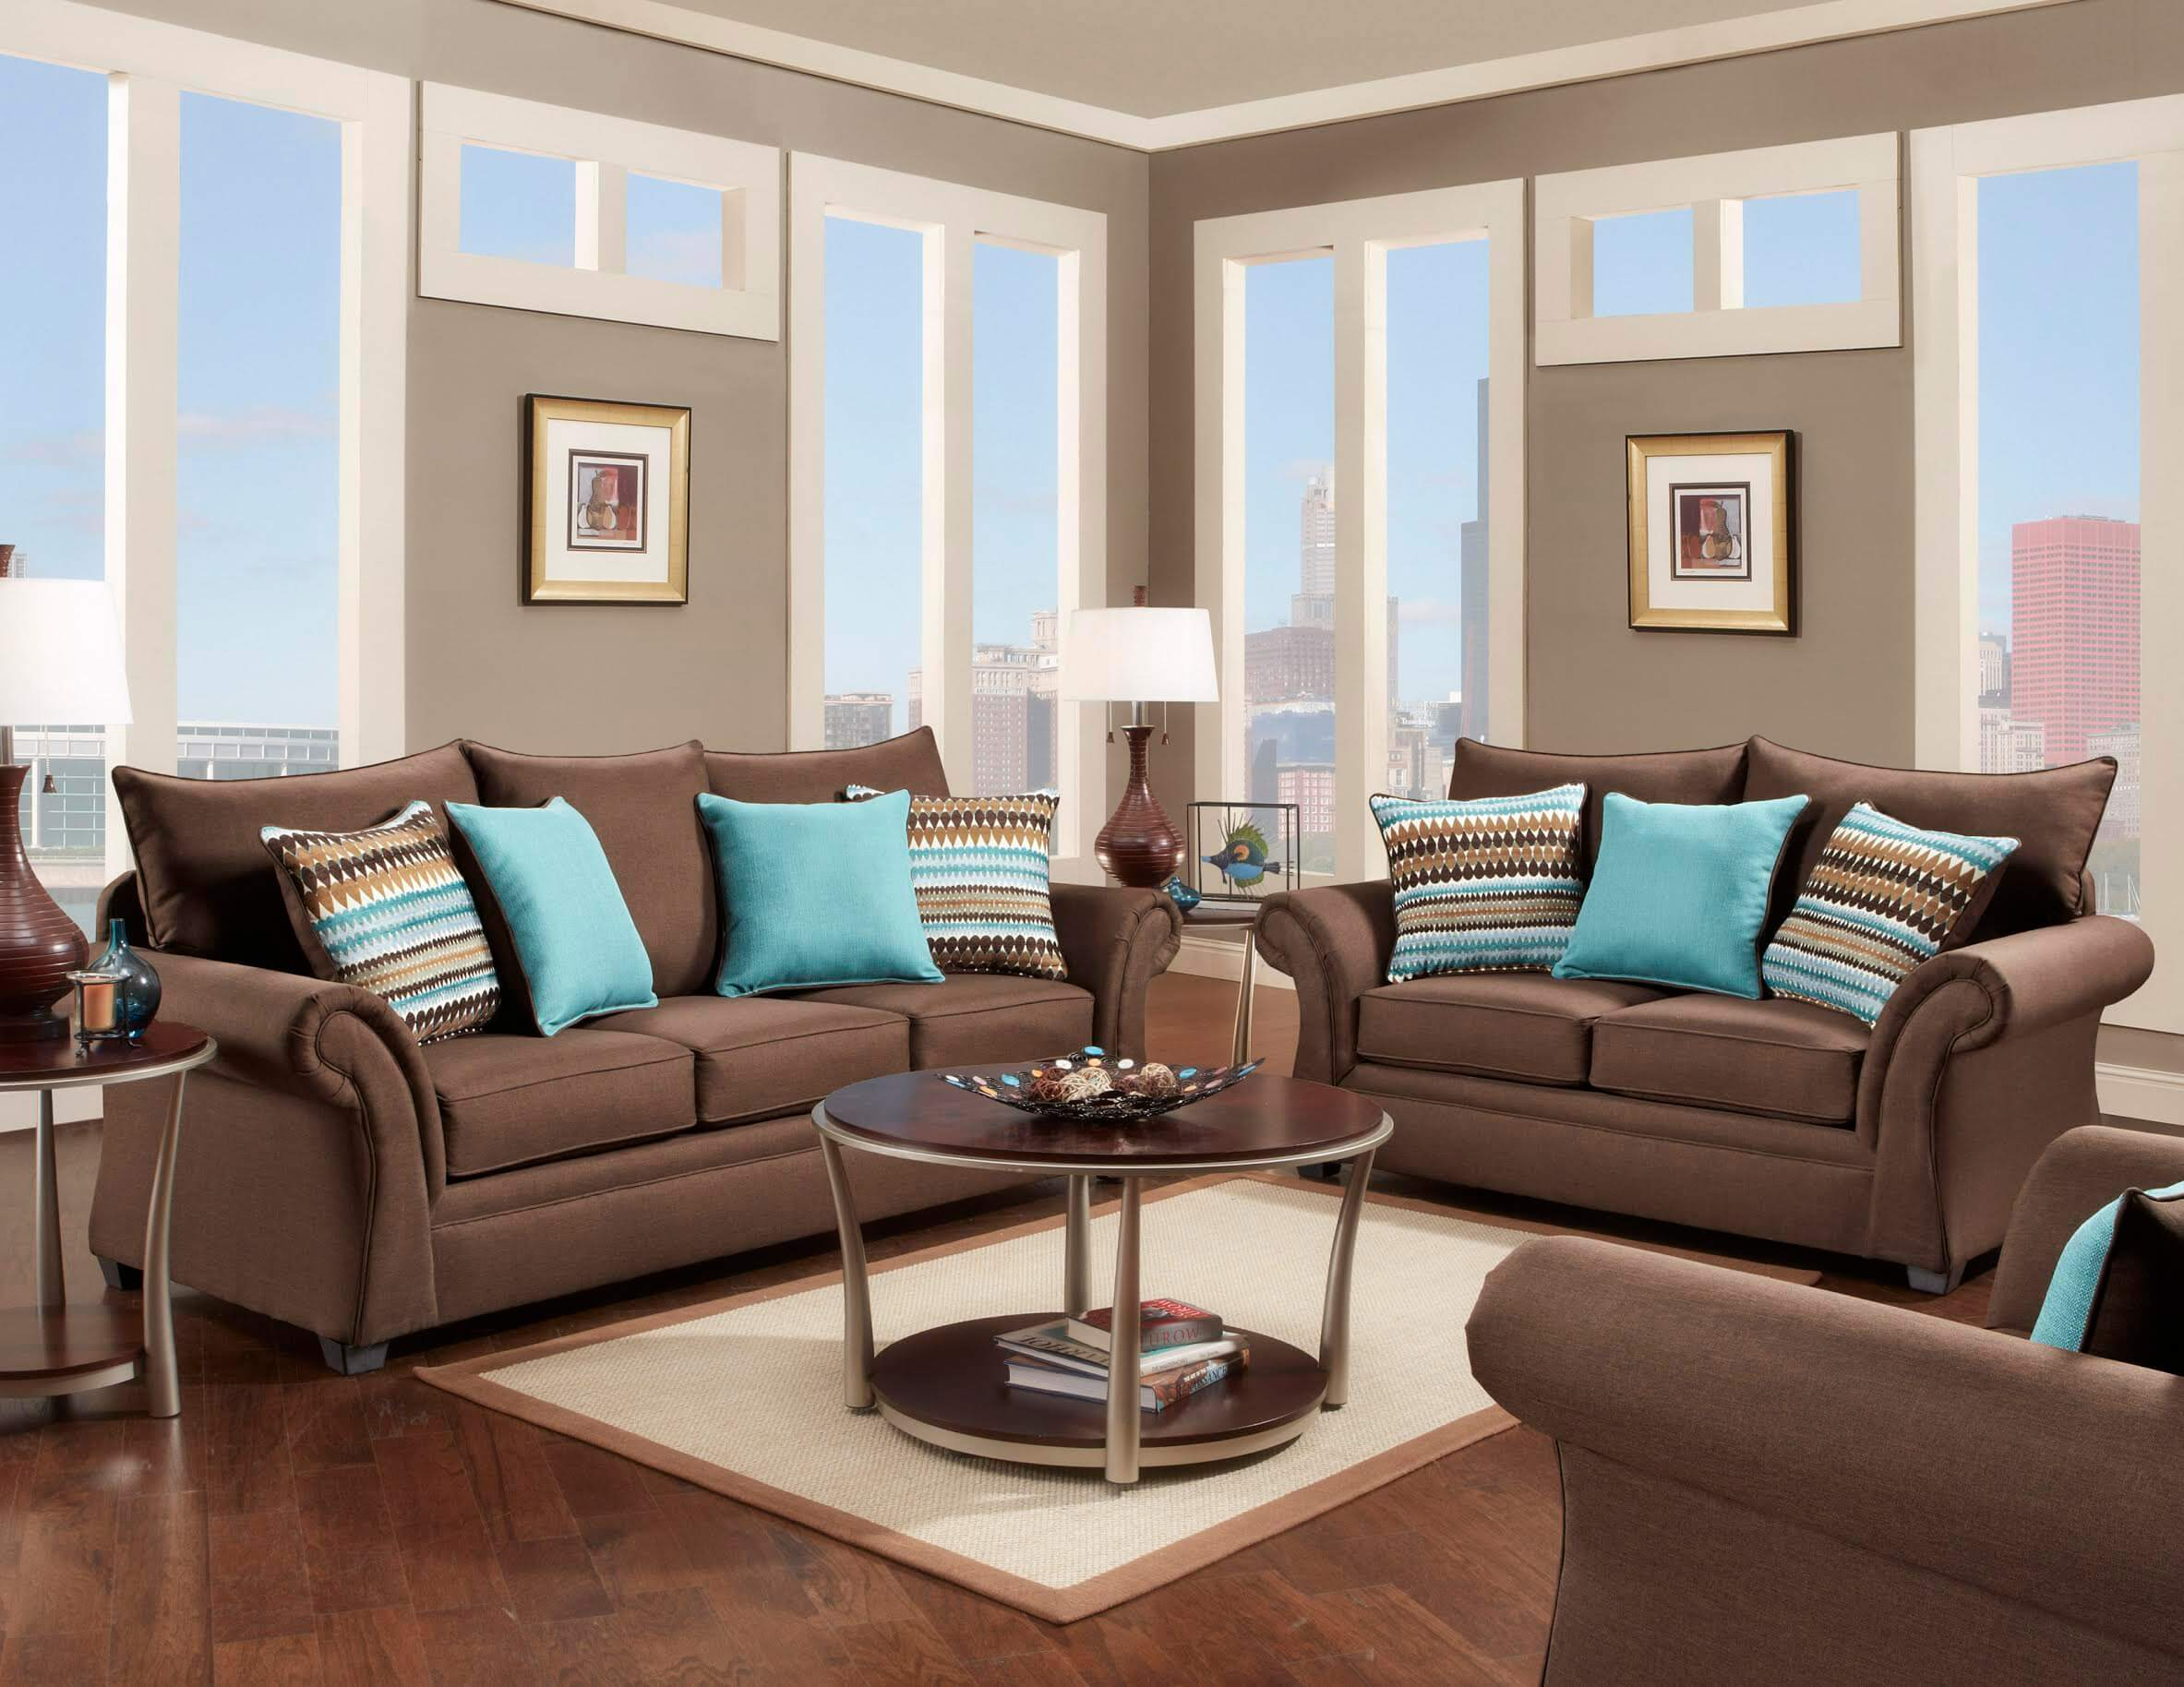 sofa sets for living room jitterbug cocoa sofa and loveseat fabric living room sets 18220